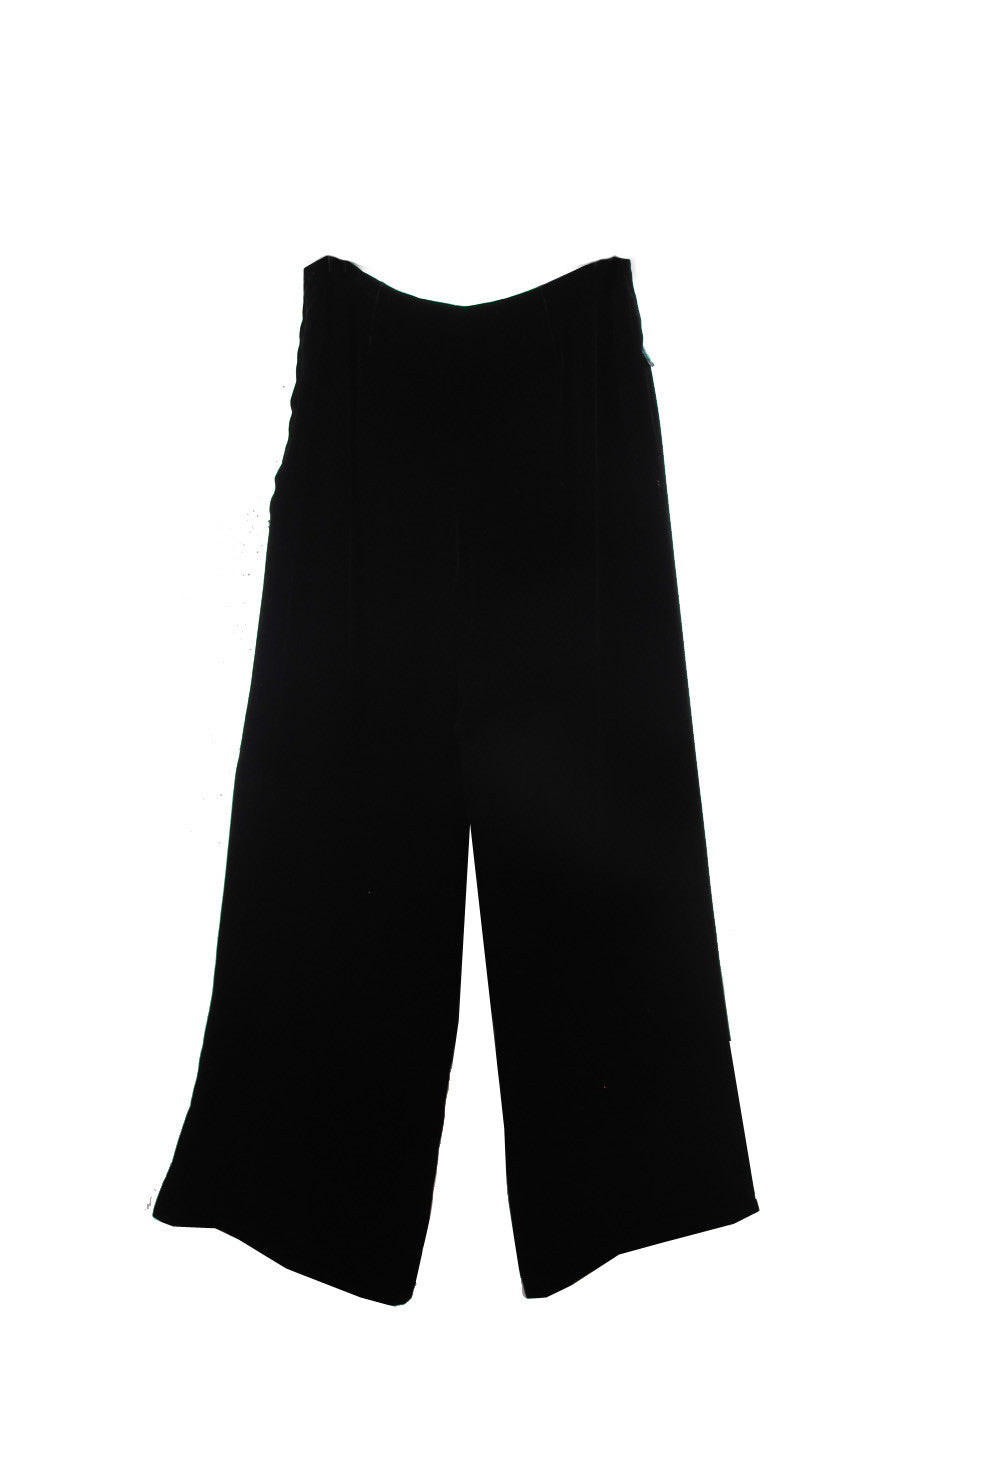 Suzanne Mallouk ONE OF A KIND Velvet Pants - AVAILABLE FOR  IMMEDIATE DELIVERY SIZE 8